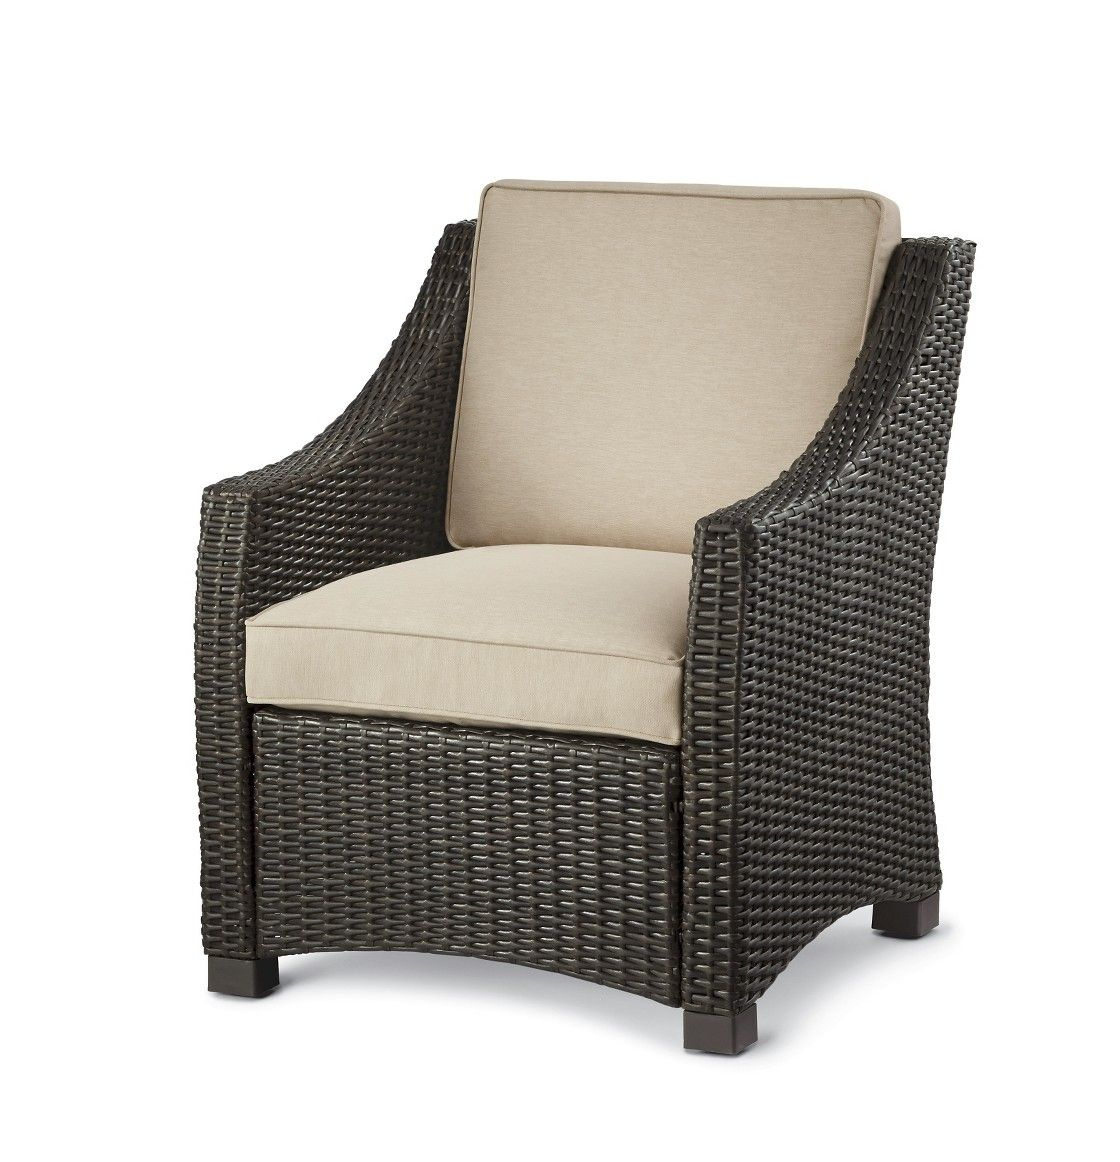 Threshold Belvedere Wicker Patio Club Chair Target patio